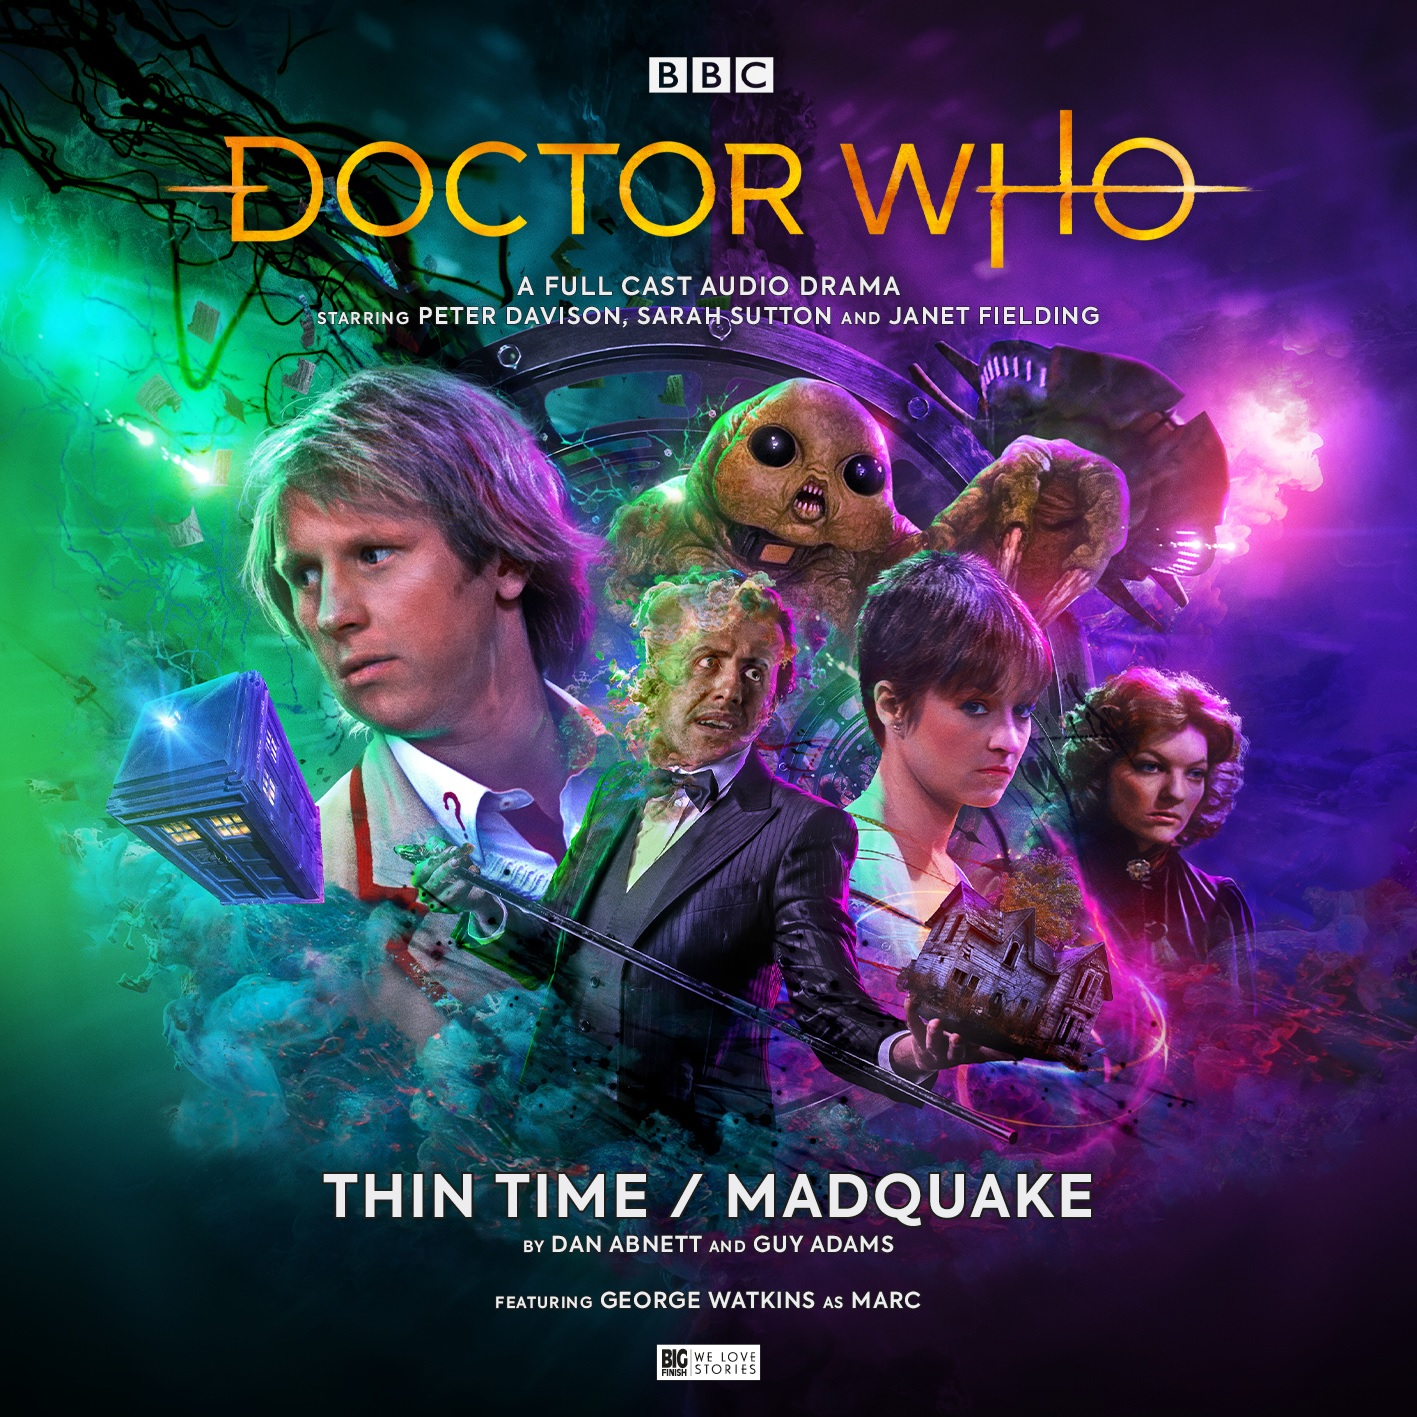 Tegan and Nyssa to Face the Slitheen in Big Finish's Thin Time/ Madquake